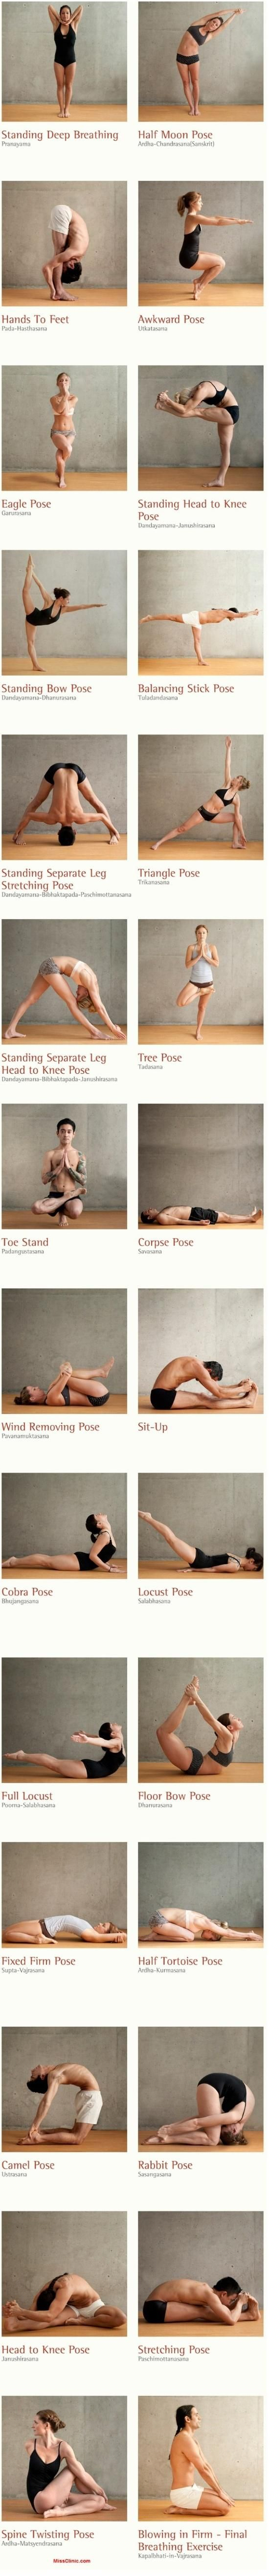 Yeah just when I think I'd like to try yoga I see this and think I'd die!